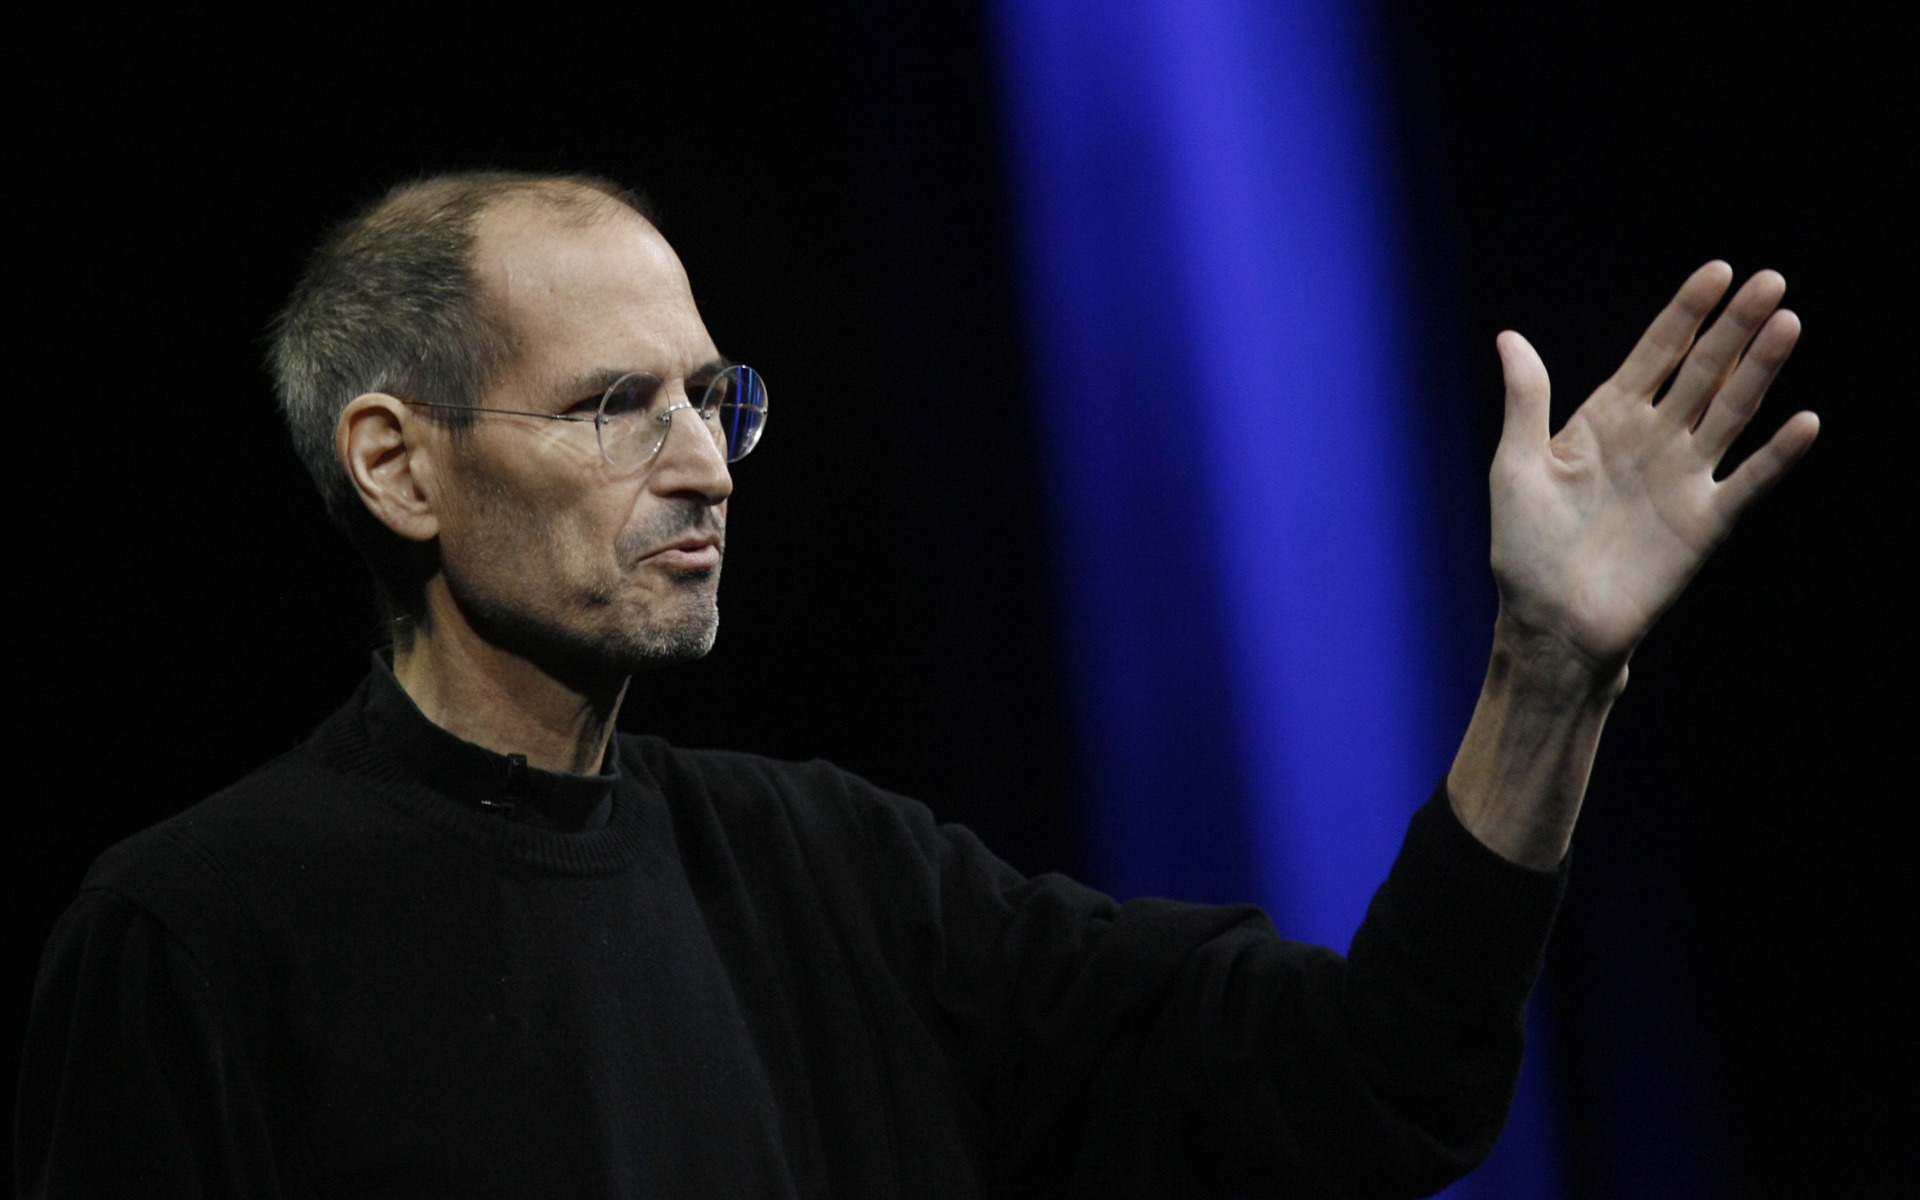 Biographer Steve Jobs regretted refusing surgery